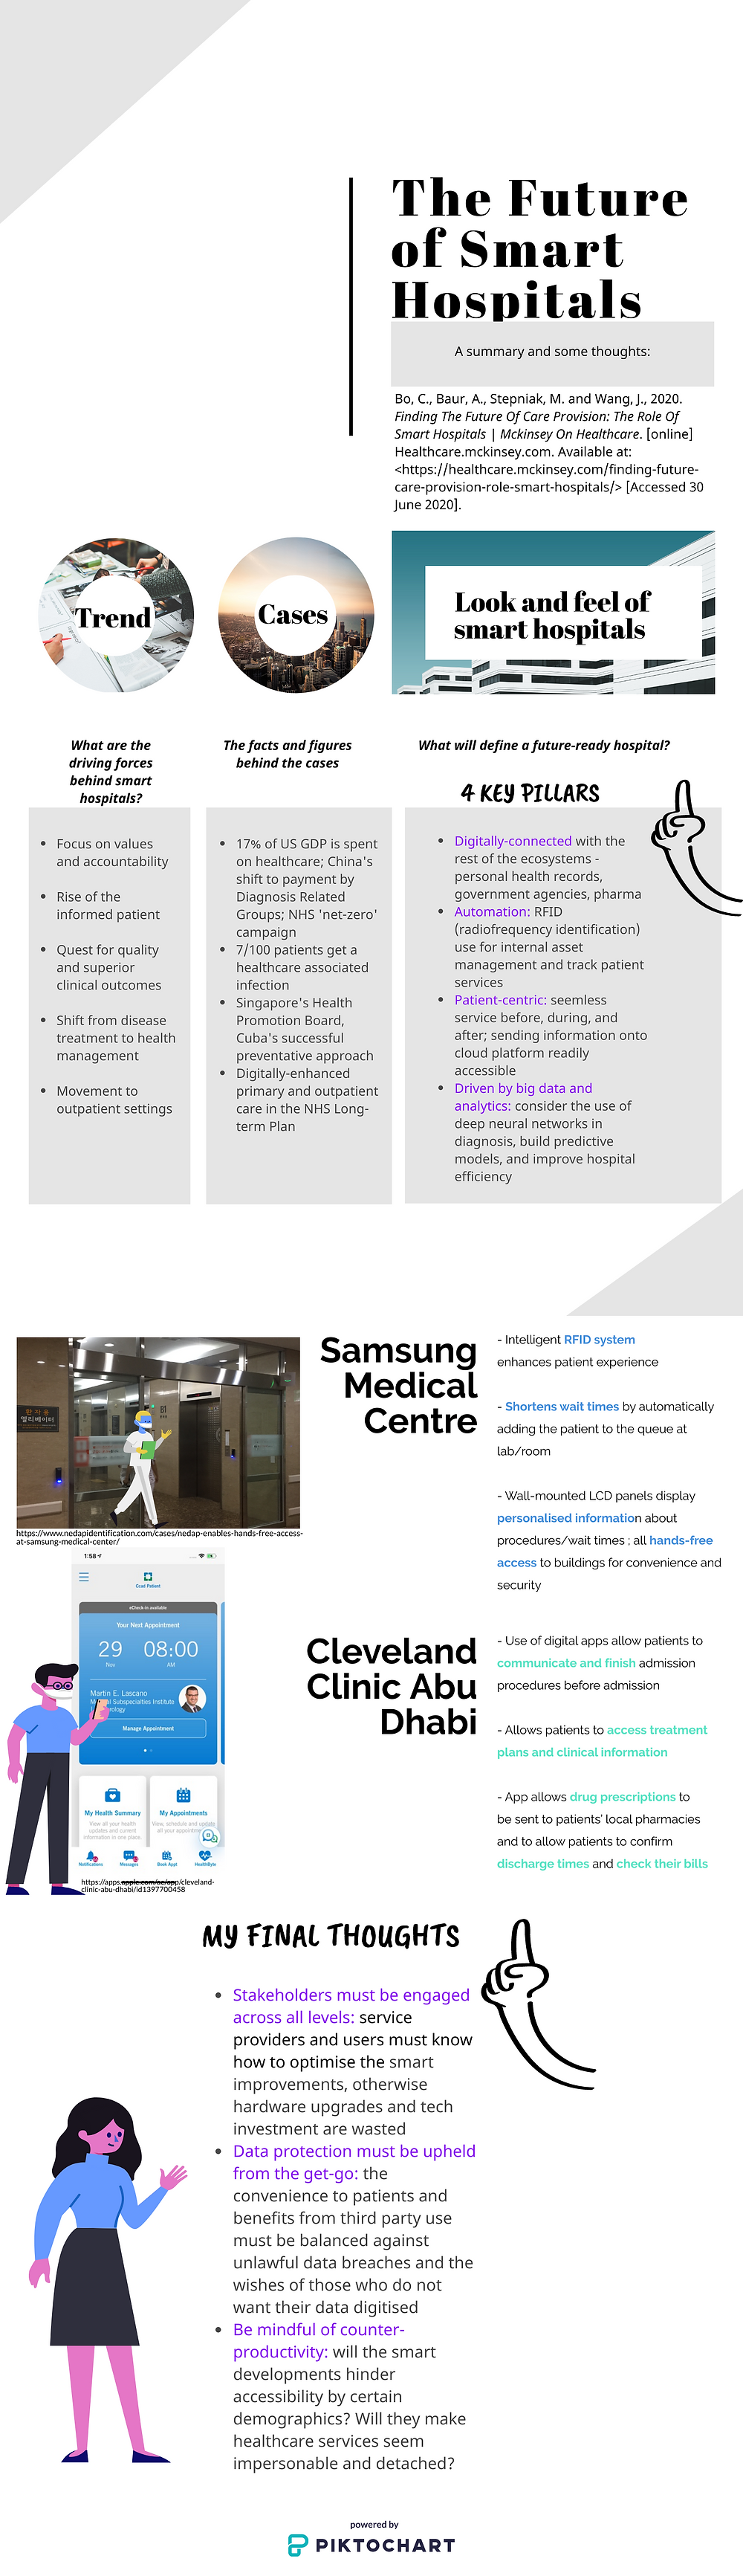 smart hospital, consulting, mckinsey, healthcare, management, artificial intelligence, genomics, digitisation, preventative, medical students, applicants, digitization, RFID, NHS, green, sustainable, US, expenditure, GDP, patient-centred, Abu Dhabi Cleveland Clinic, Samsung Medical Center, trends, medication